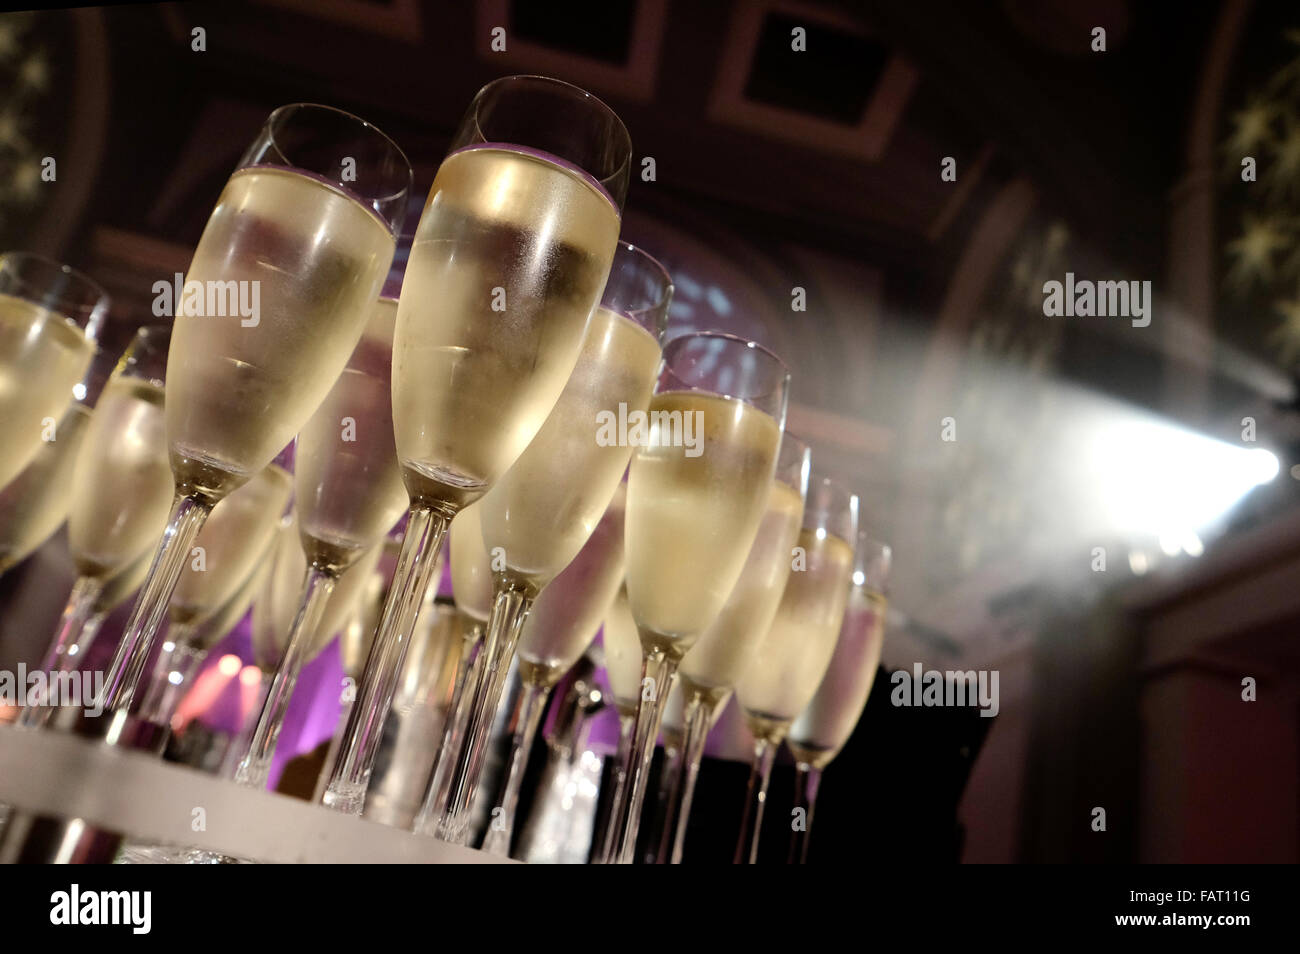 View from low down of some filled Champagne glasses at a party - Stock Image